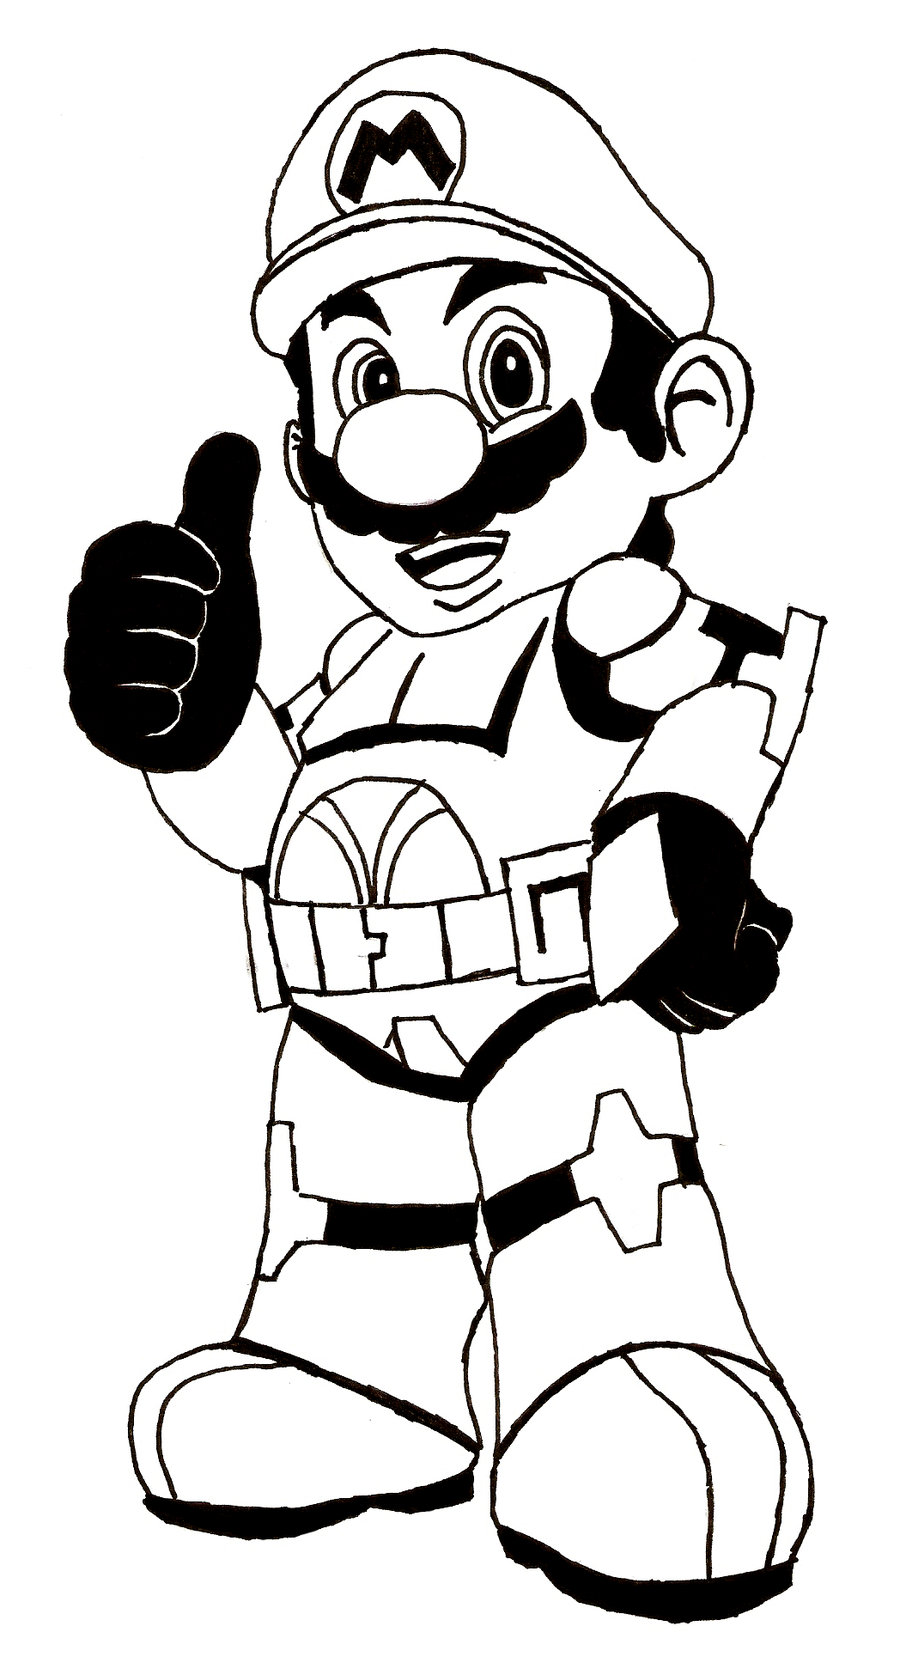 online mario coloring pages - photo#19